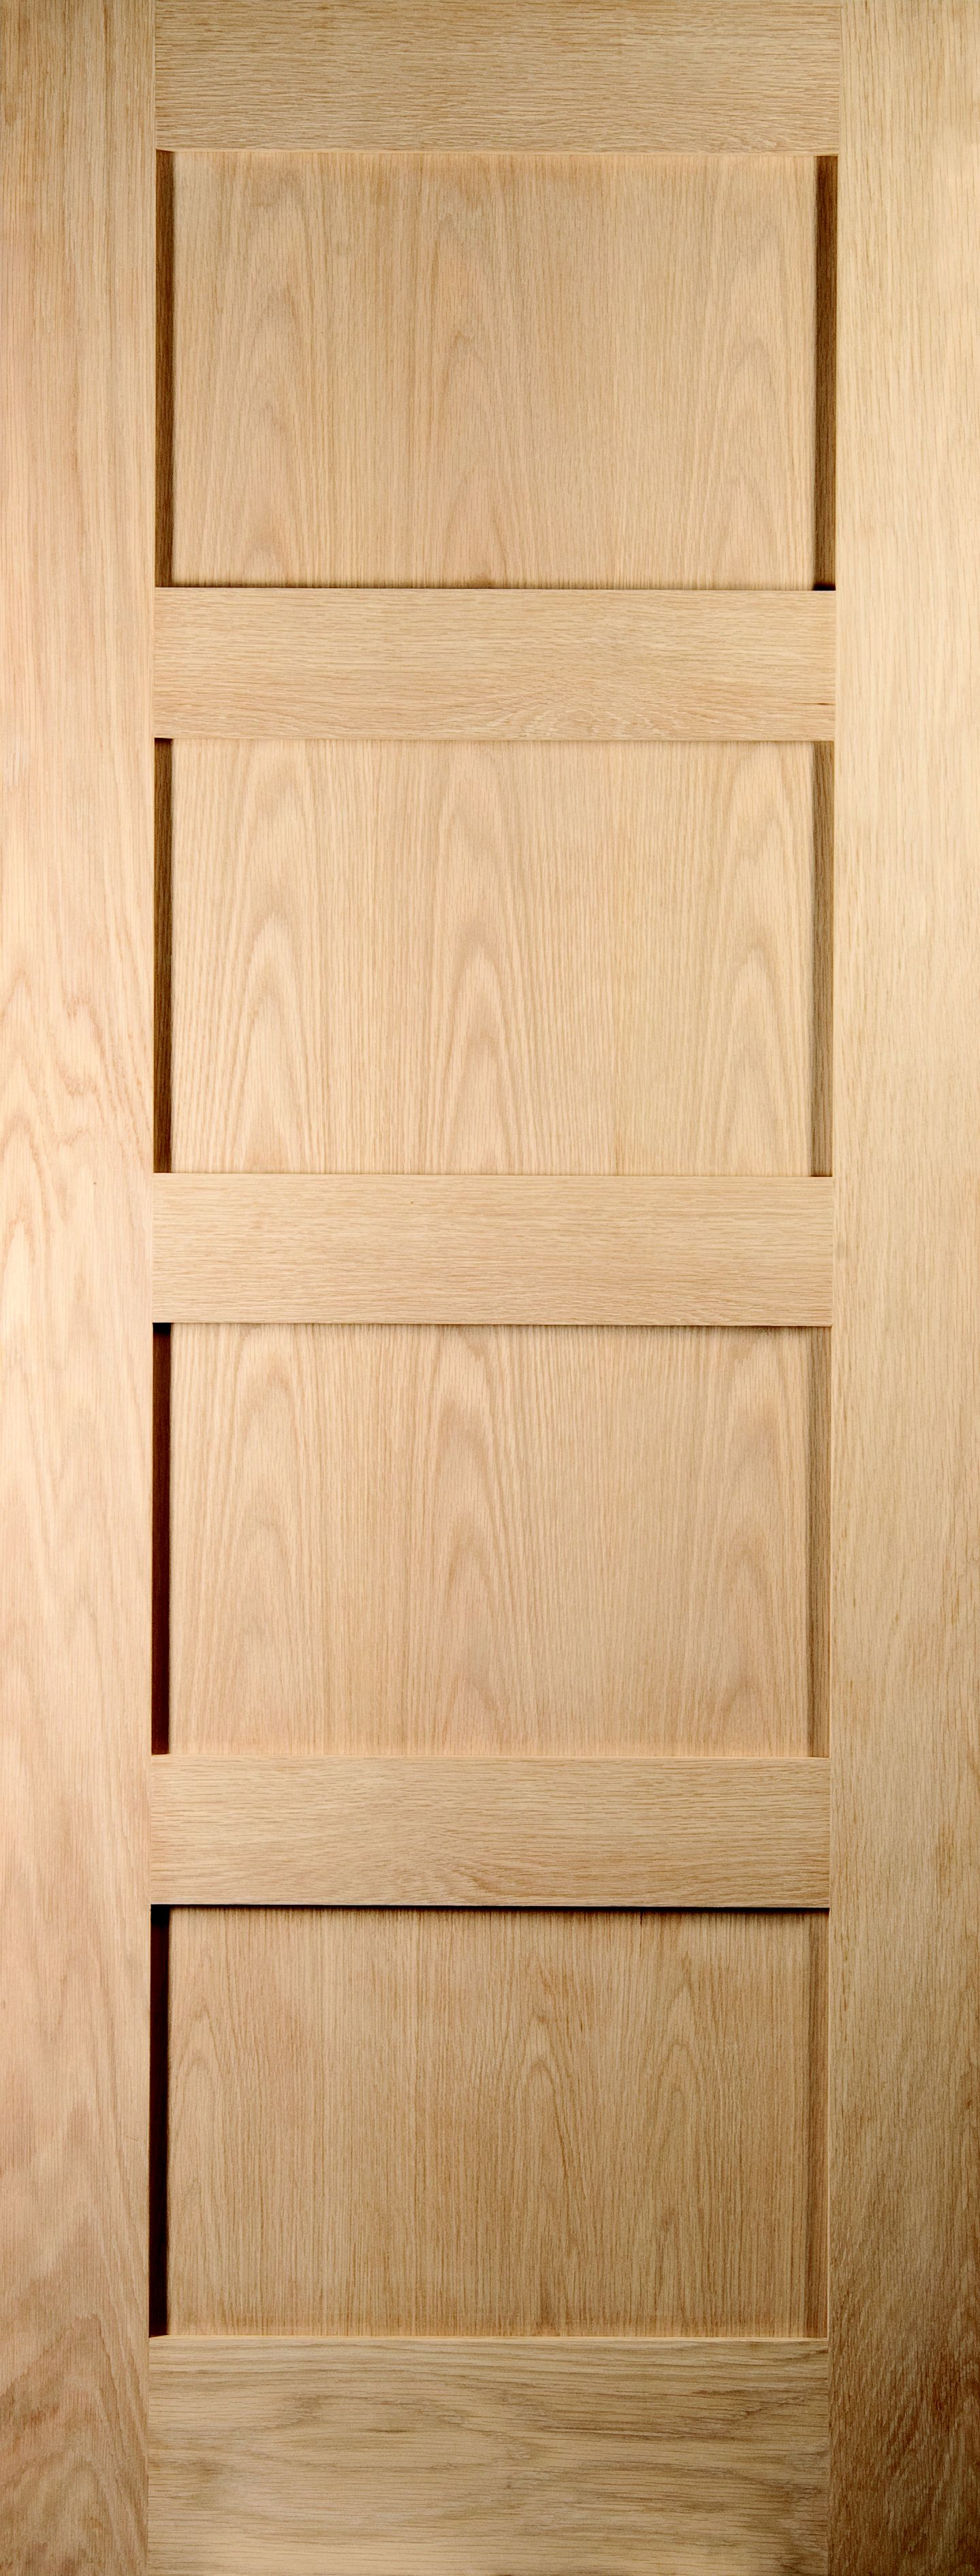 4 Panel Shaker Oak Veneer Unglazed Internal Standard Door, (h)1981mm (w)838mm